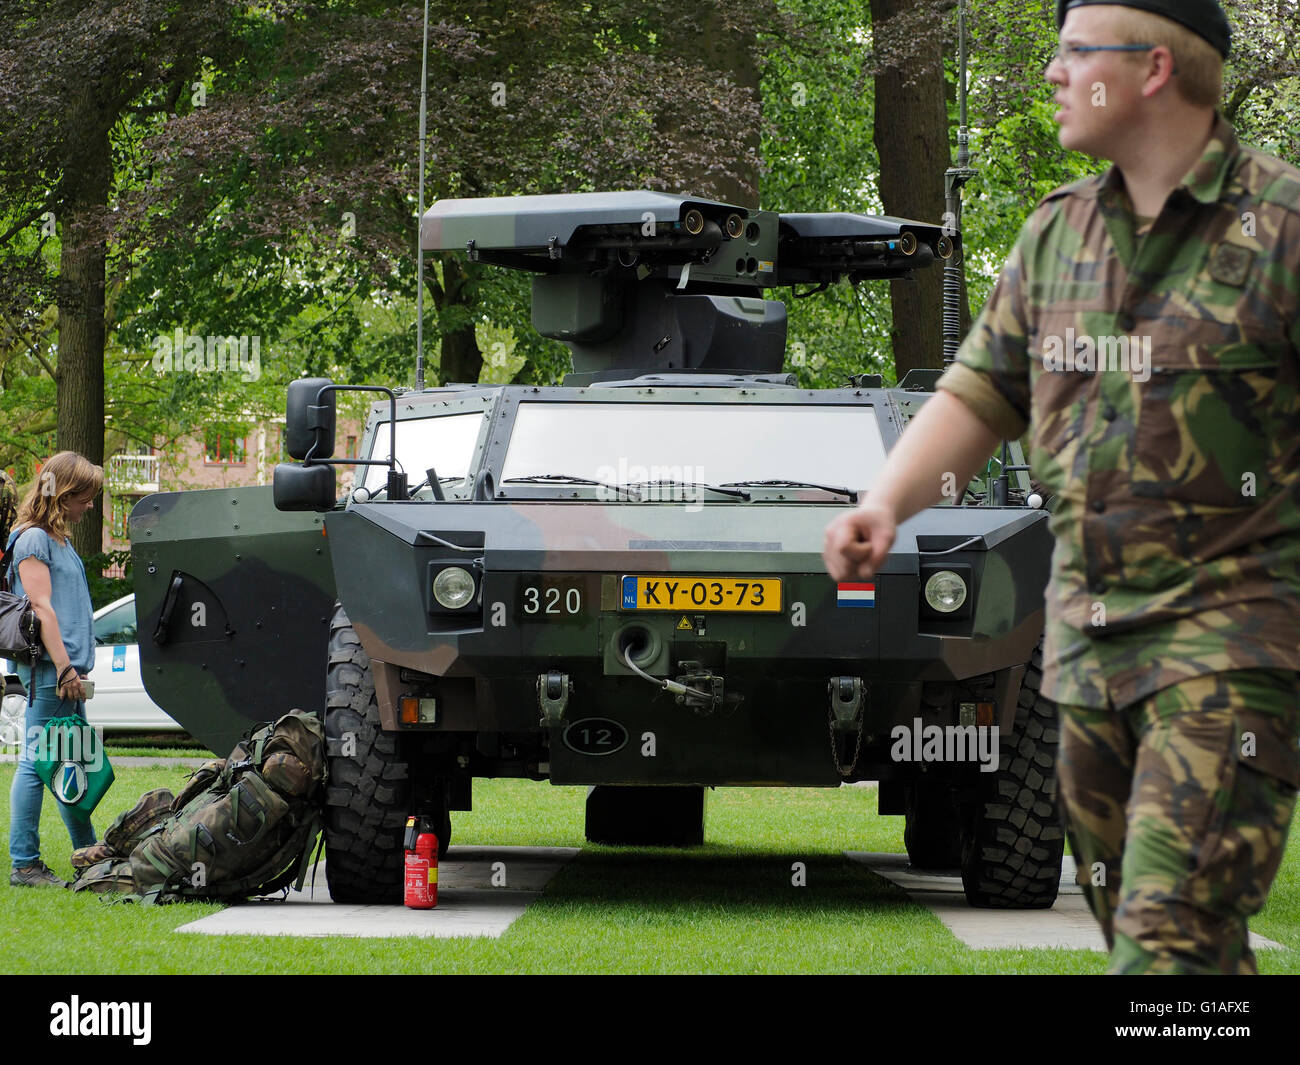 Dutch army armored vehicle, equipped with stinger rocket launcher system, Valkenberg park, Breda, the Netherlands. - Stock Image